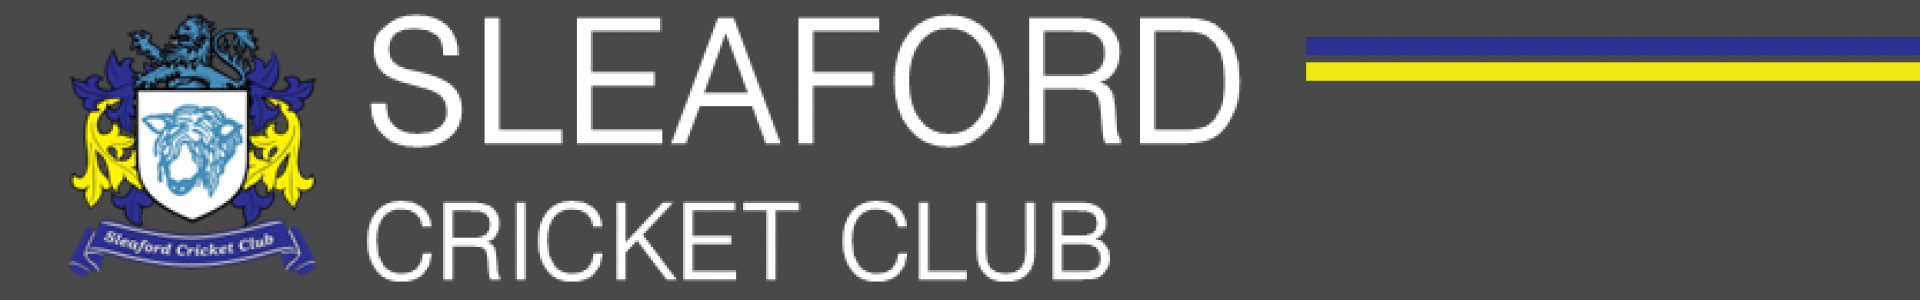 cropped-Website-Graphic-Sleaford-CC-1.png